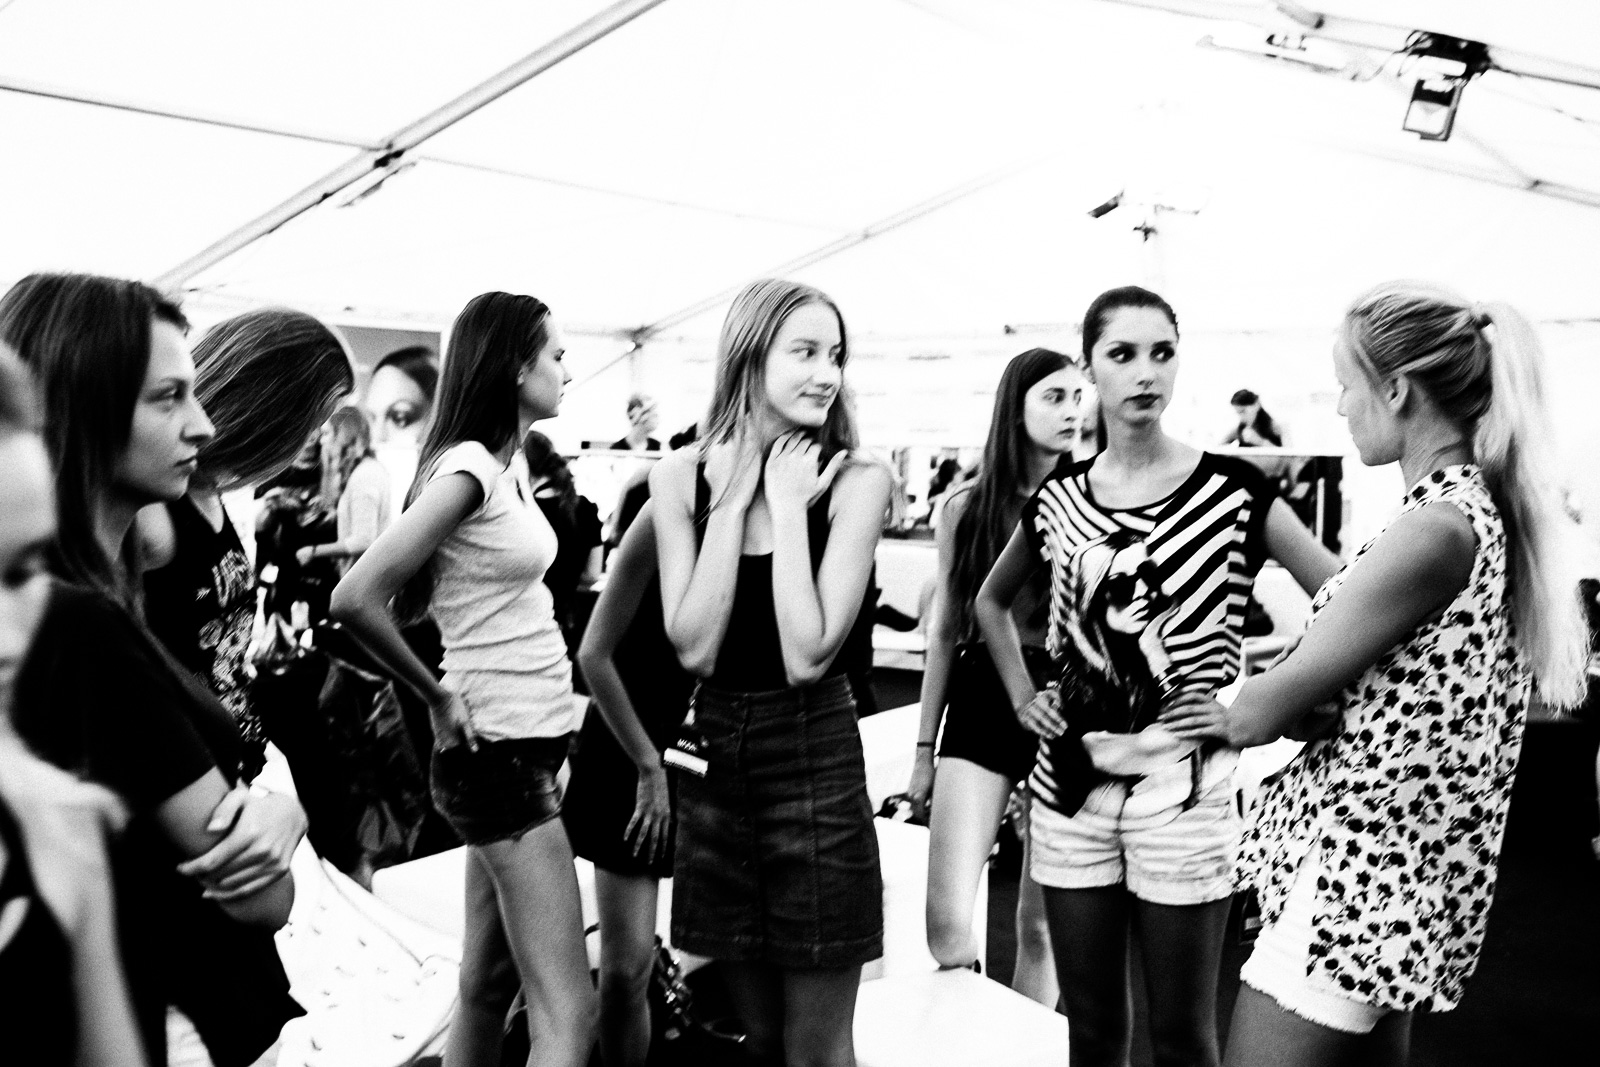 vienna-fashion-week-photographer-019